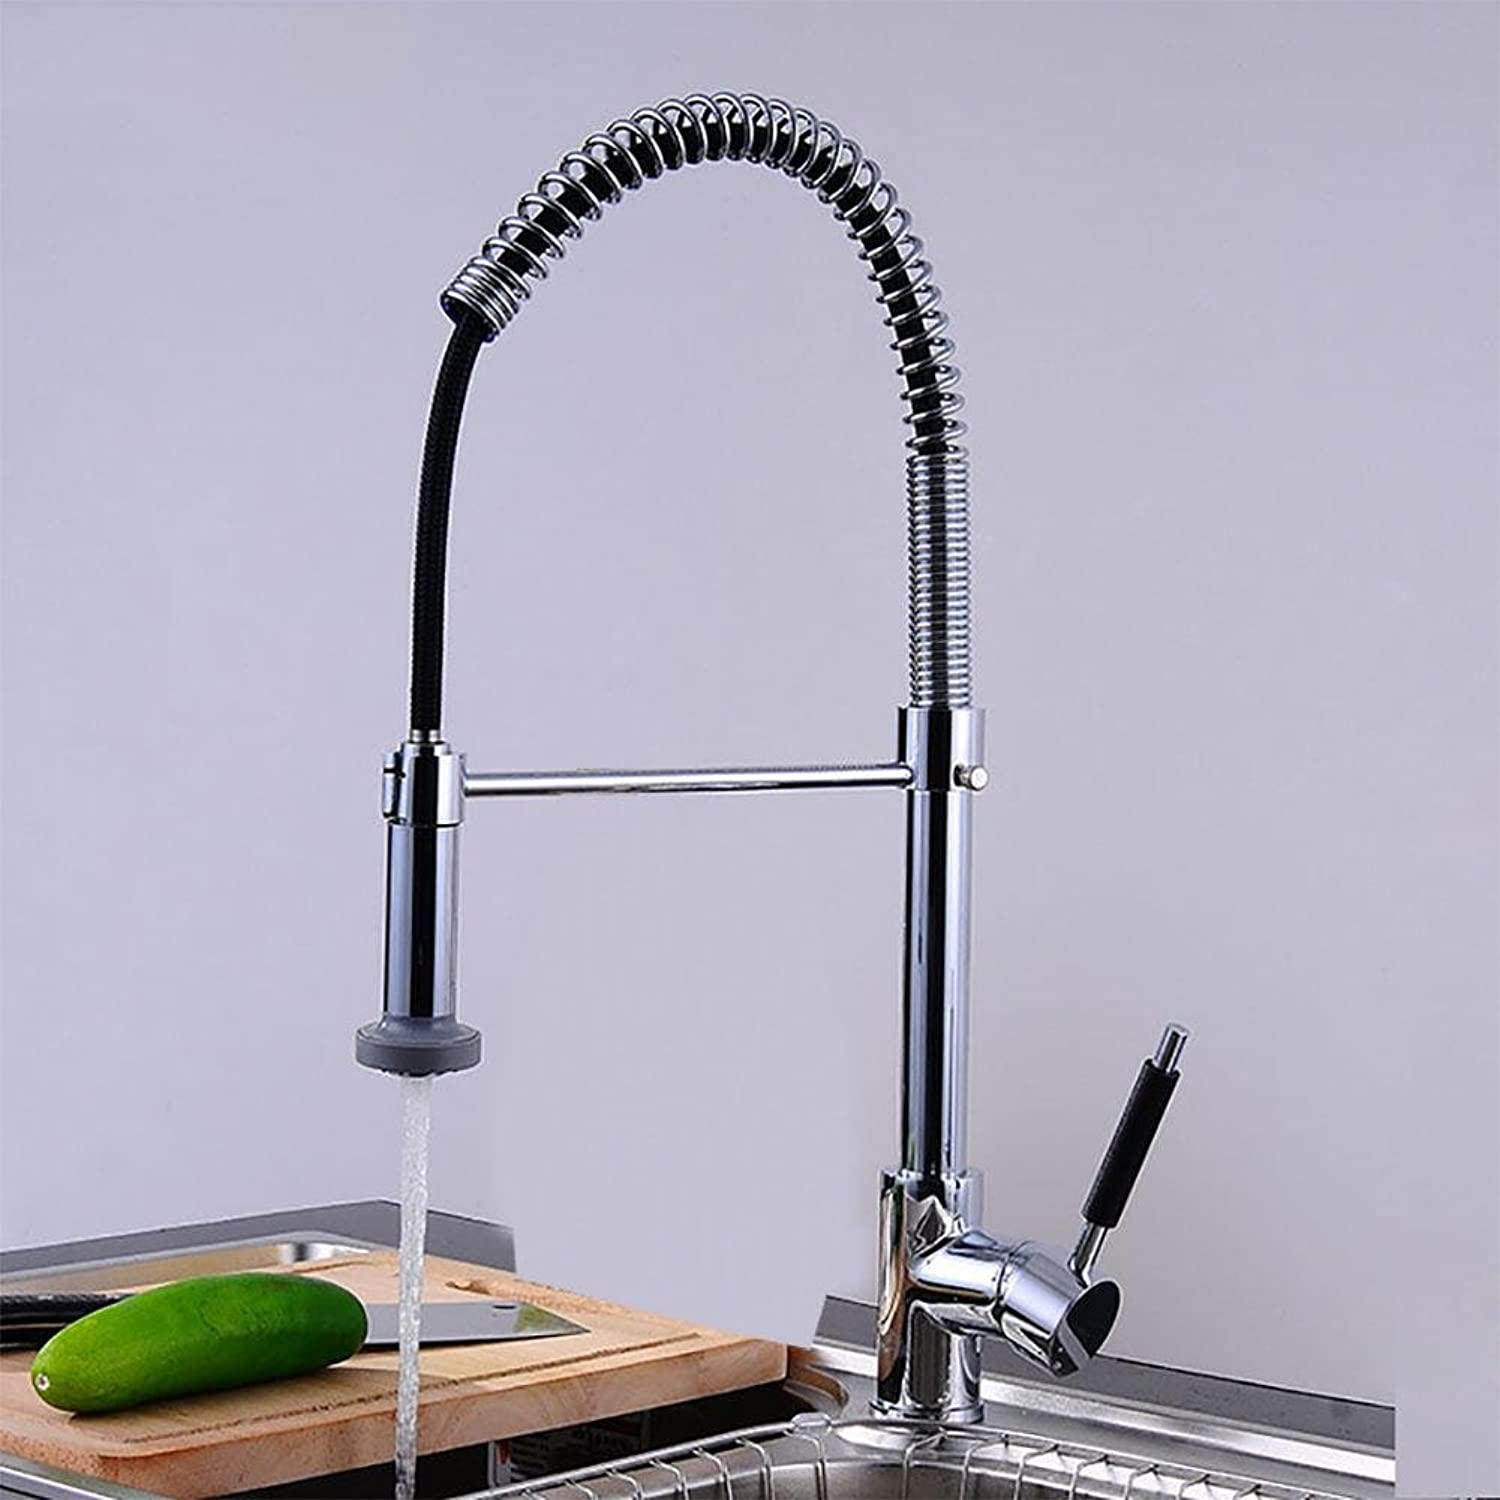 QW Kitchen sink spring faucet pull pull single handle redatable mixer hot and cold faucet wire drawing , B